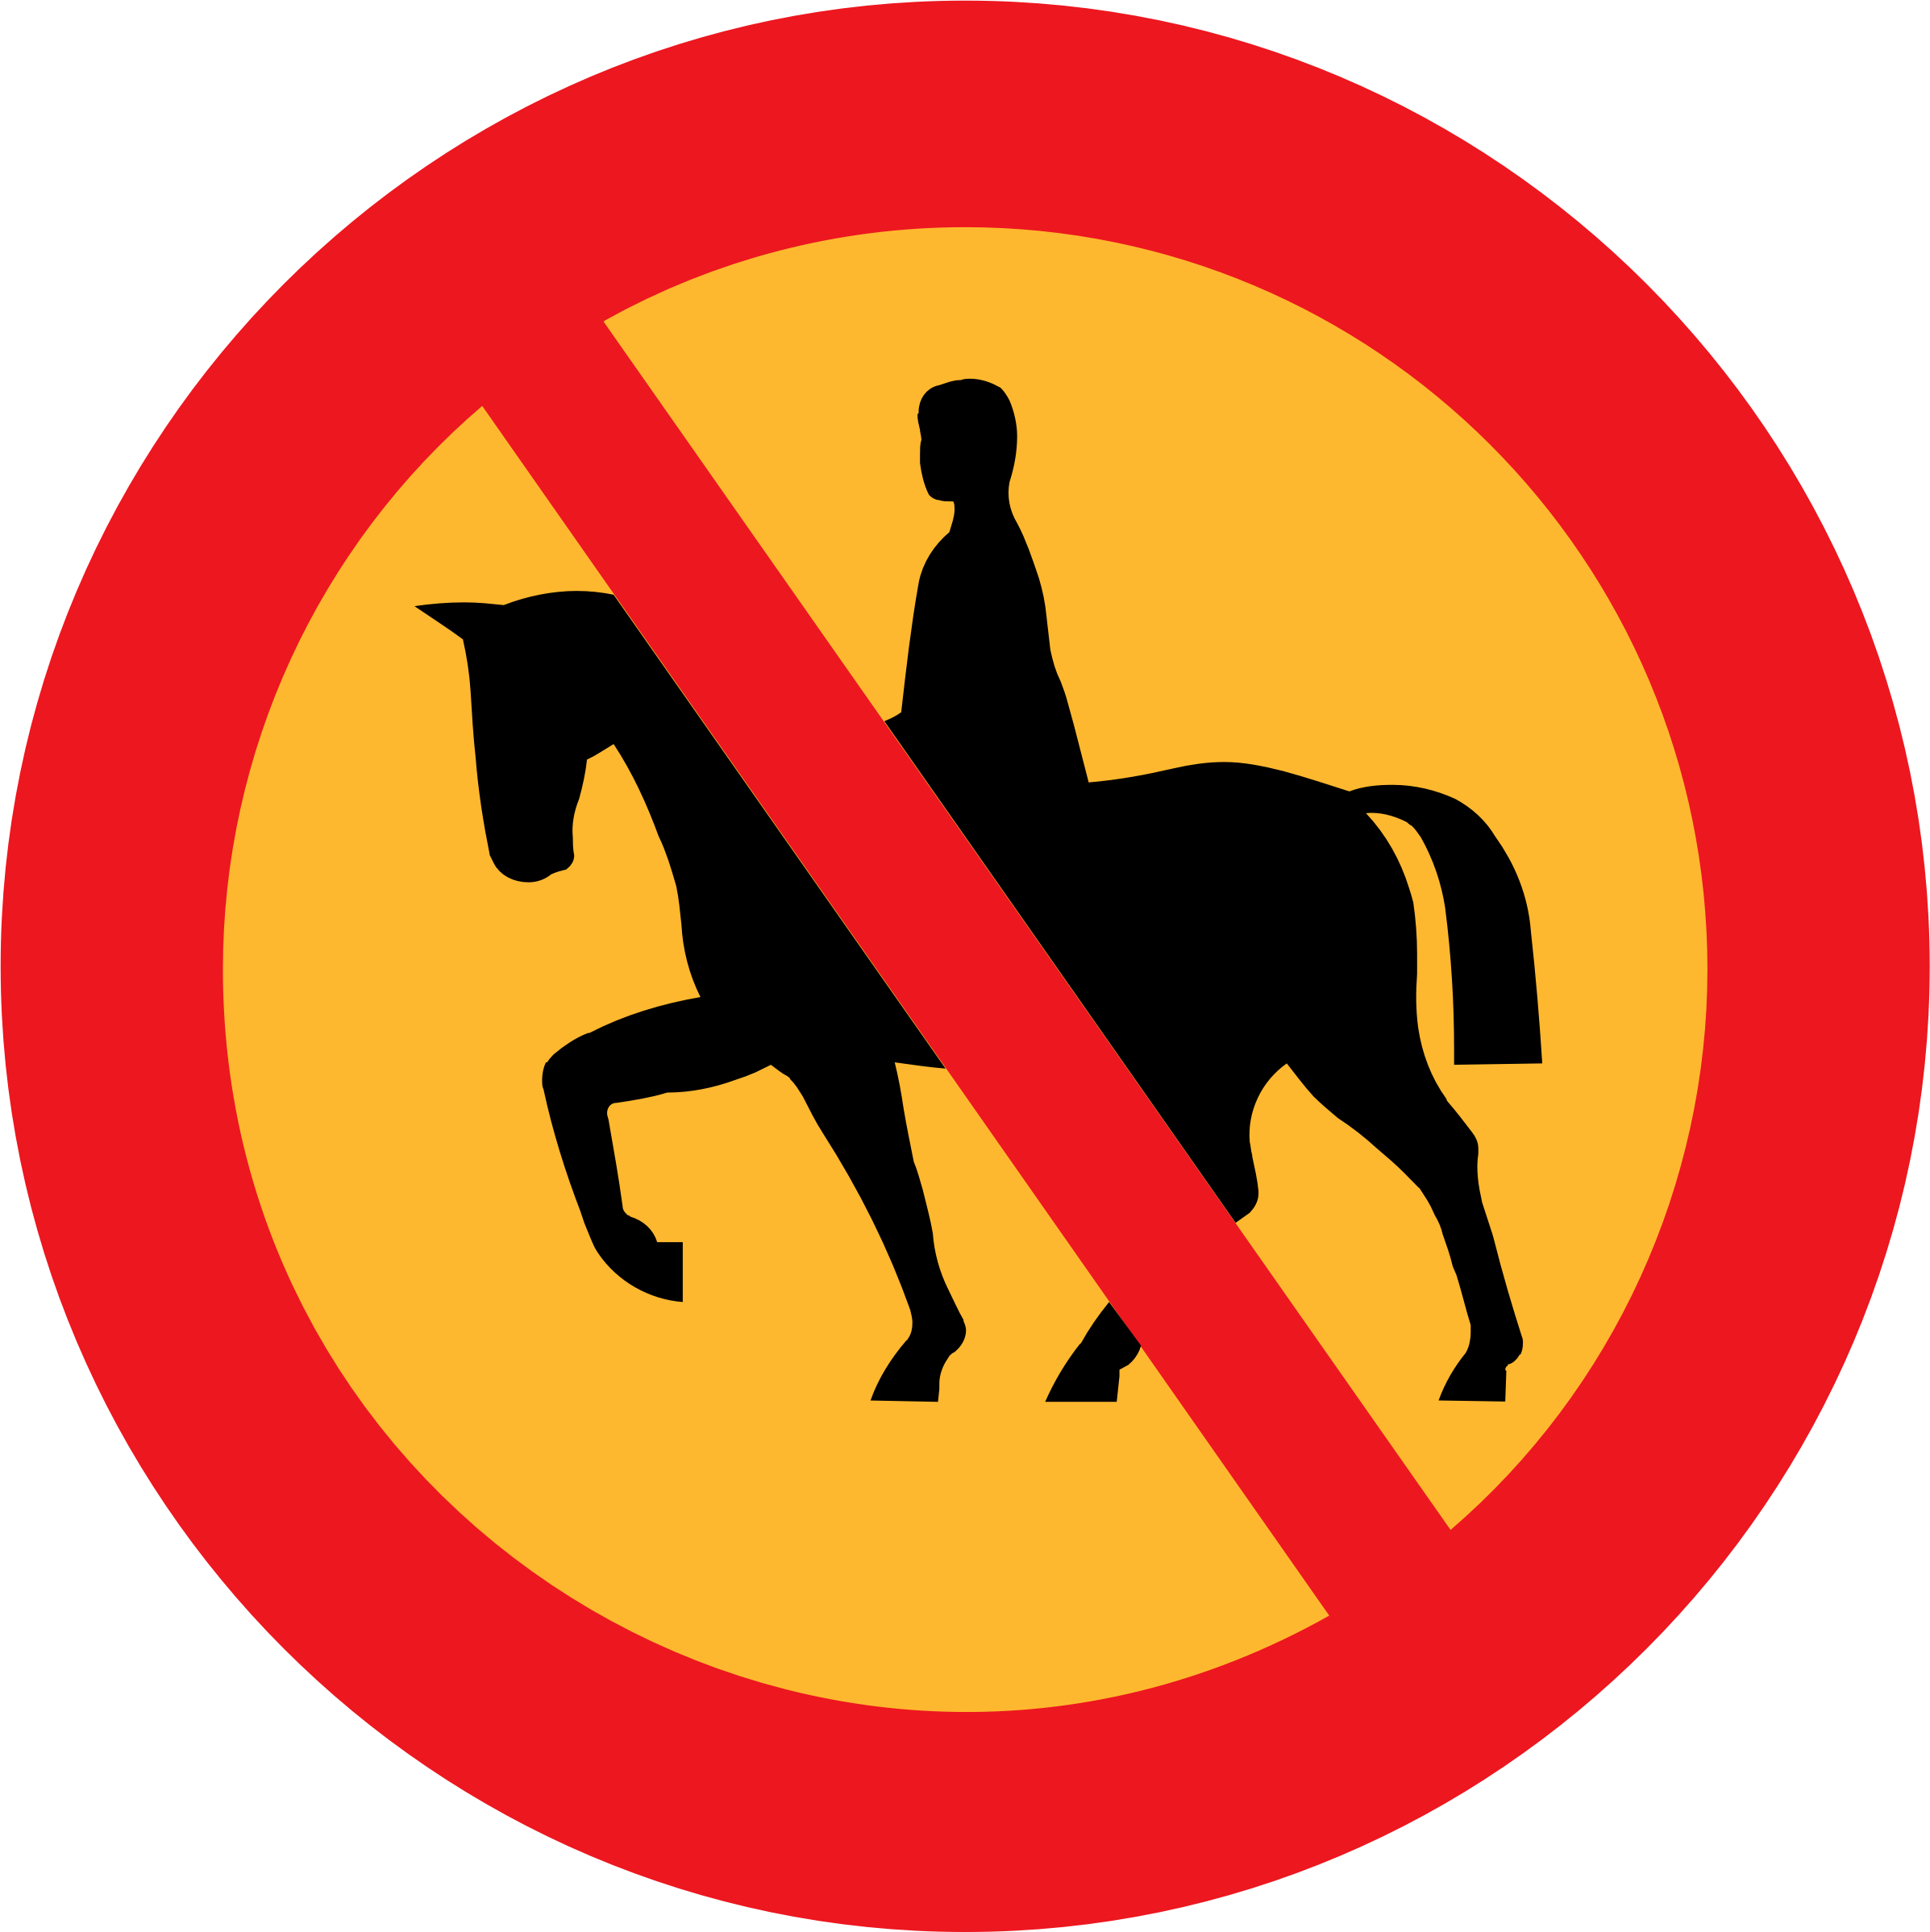 No horse riding sign by ryanlerch